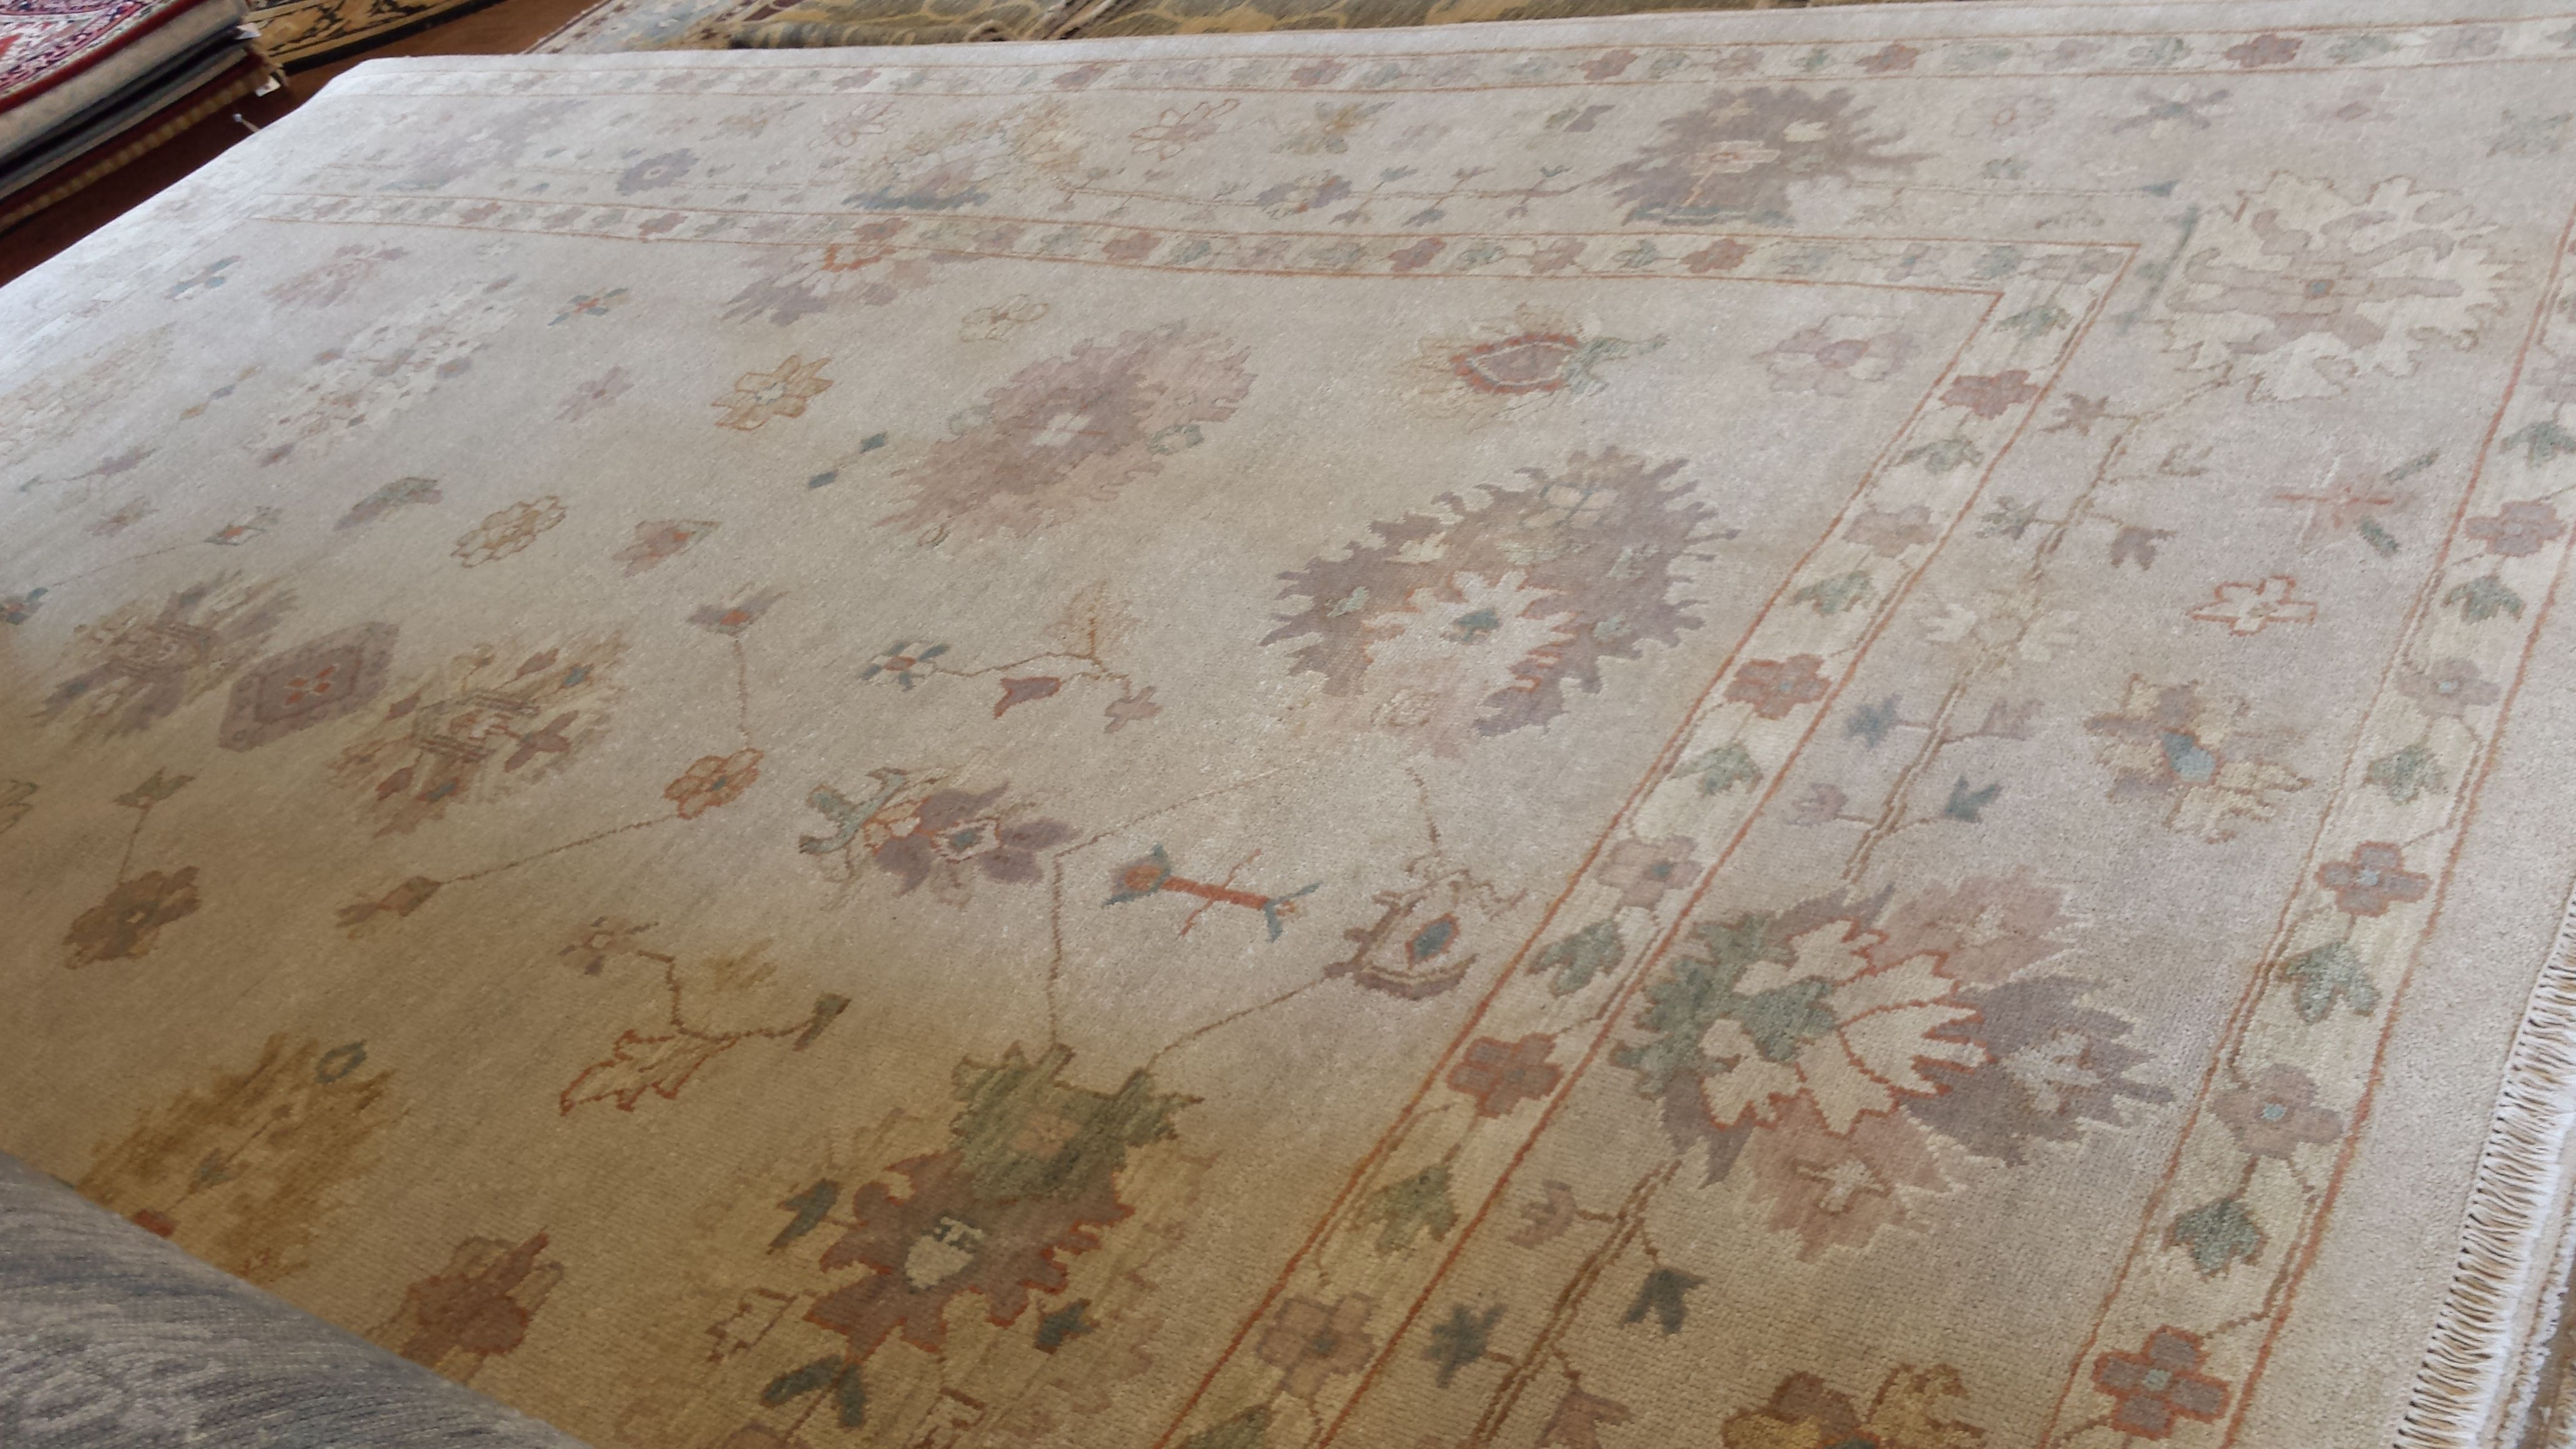 May Day Deal! 💃🏼 Vintage Oushak Oriental Rug  10.3 x 14.1  $2975 reduce from $6950 Call 205-870-4444 or drop by if it's for you!  Please share! 😇 #nilipourorientalrugs #MayDayDeal #familybusiness #since1972 #fullservice #shoplocal #happycustomer #artyoucantreadon #orientalrug #rug #arearug #naturalfibers #wholesaleprices #directimporting #affordableluxury #functionalrug #practicalrug #appeal #qualityrug #investment #conversationpiece #Lifestyle #rugcleaning #orientalrugcleaning #arearugcleani